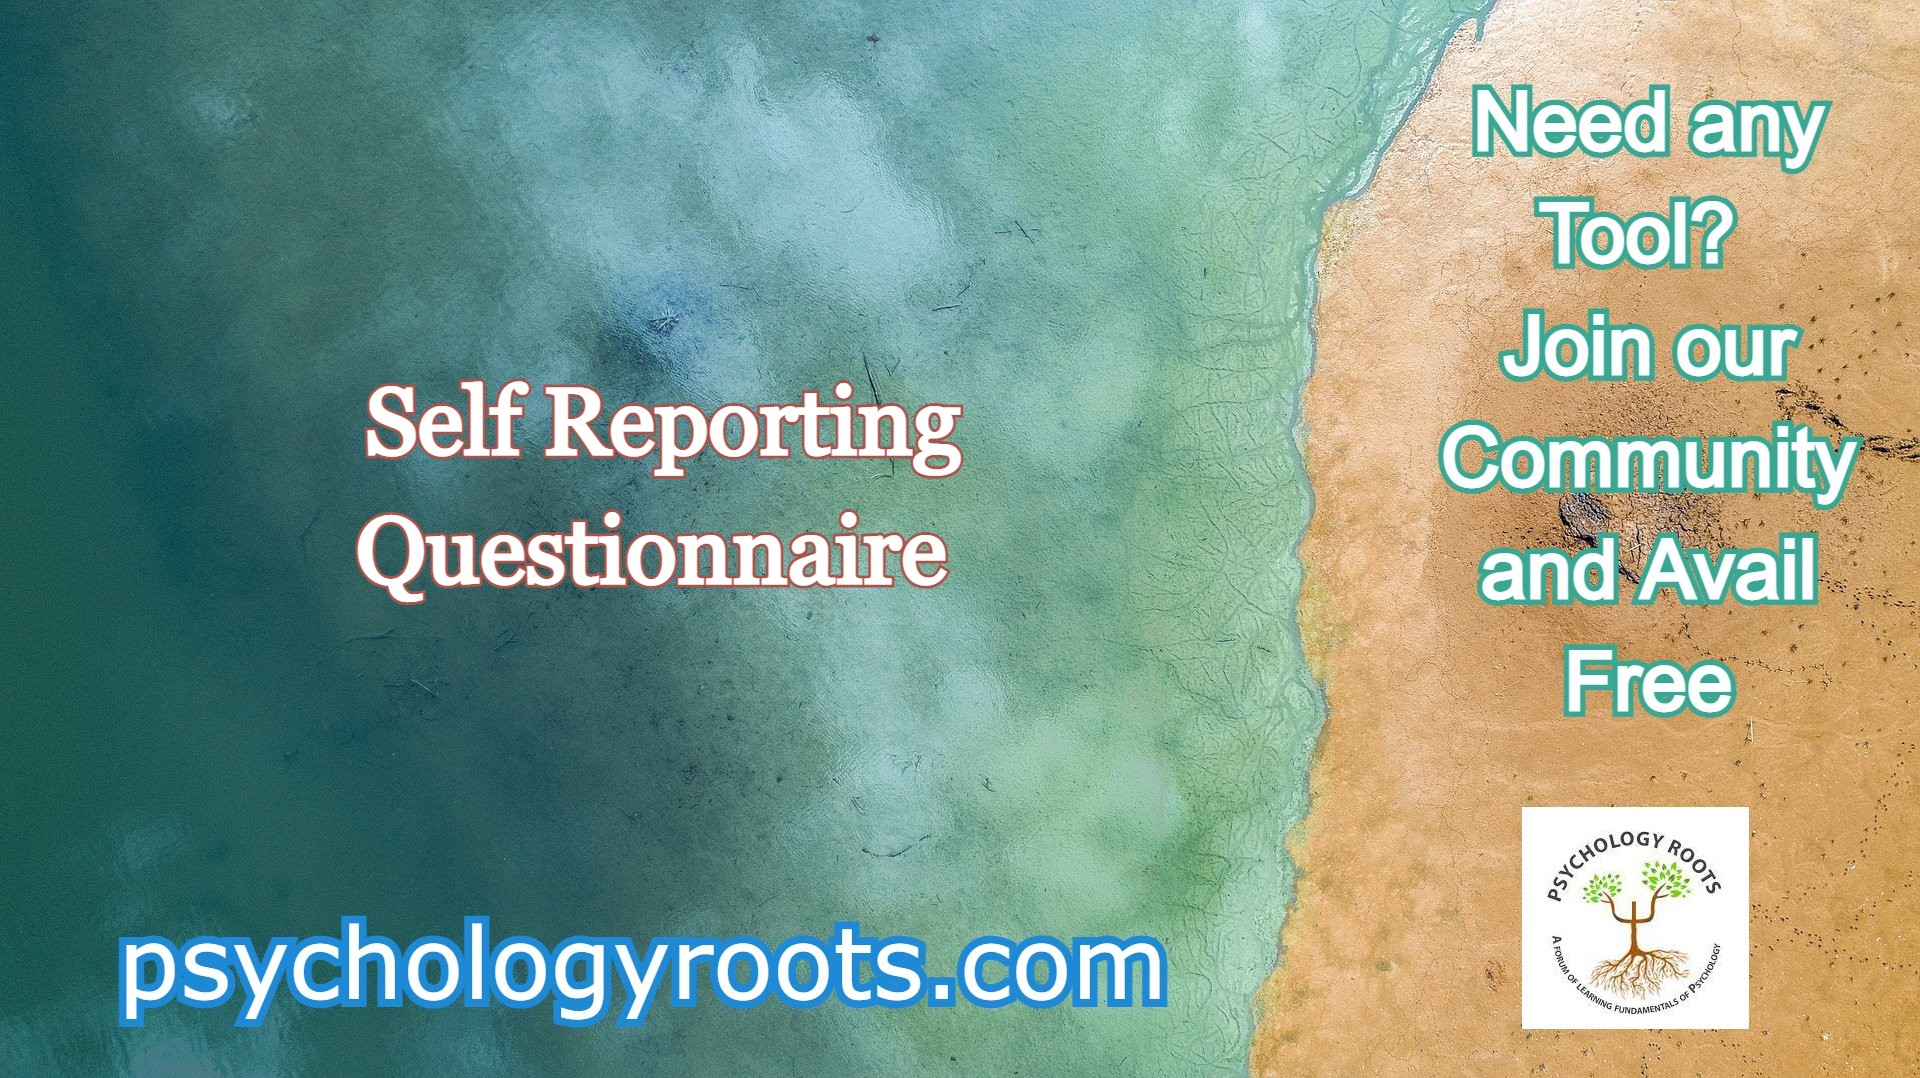 Self Reporting Questionnaire